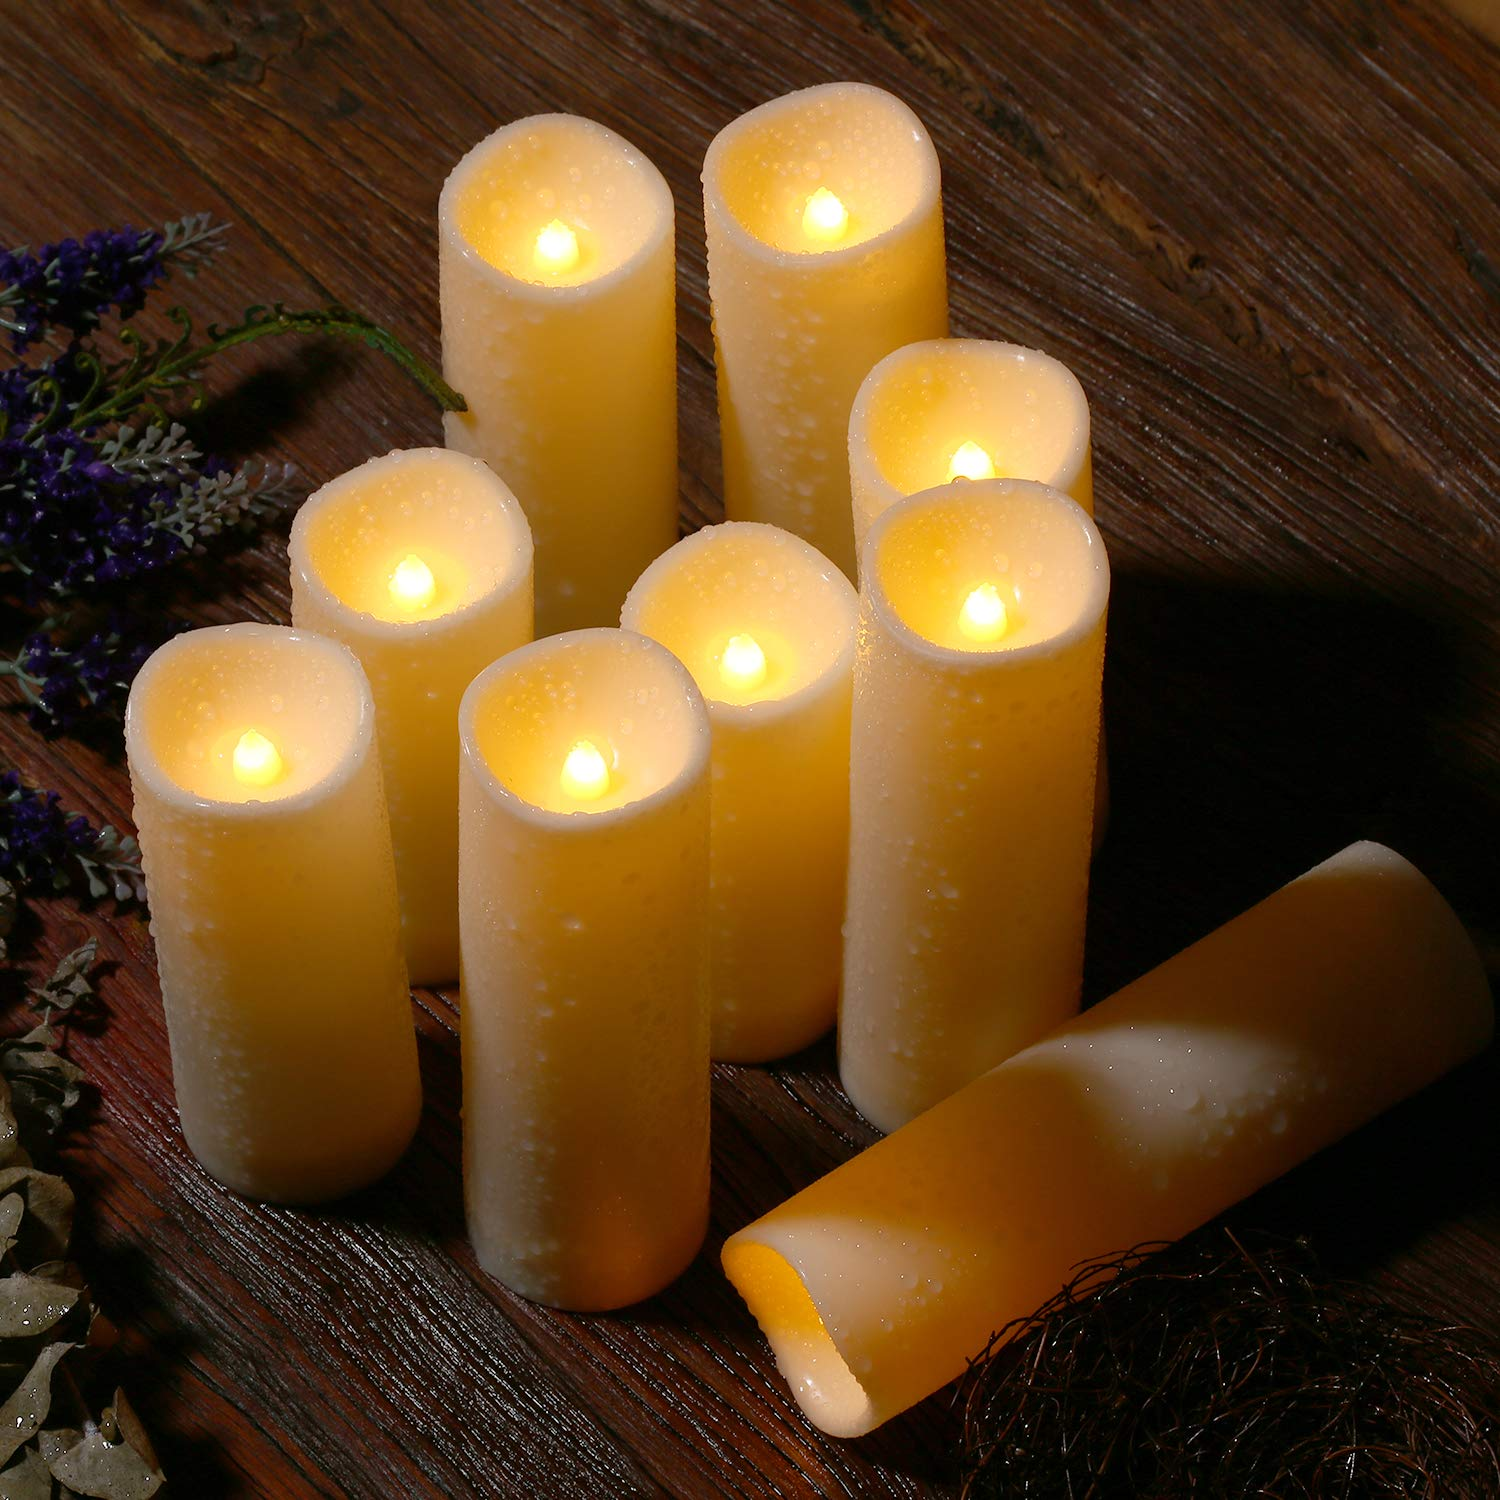 Flameless Candles, Waterproof Outdoor Candles set of 9 ( D 2.2'' X H 5''5''6''6''6''7''7''7''7'' ) LED Candles Battery Operated Candles with Remote Timer, Ivory White by Enido (Image #8)